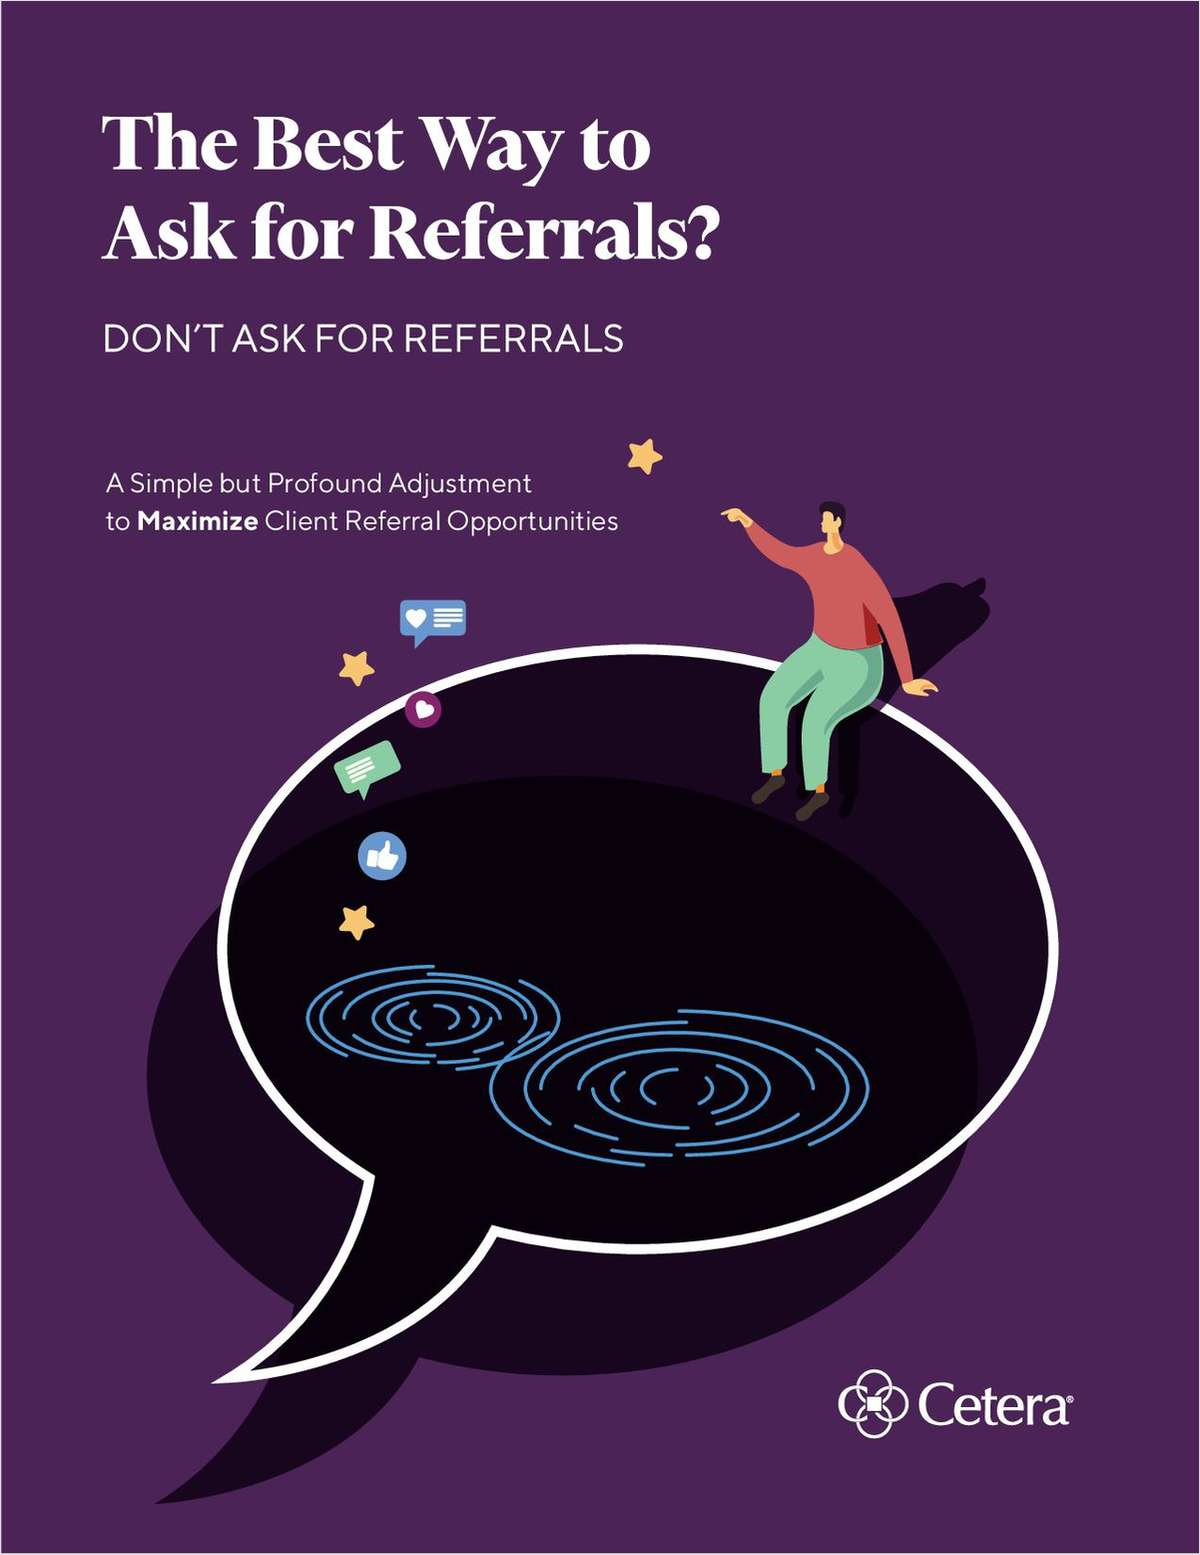 The Best Way to Ask for Referrals? Don't Ask for Referrals